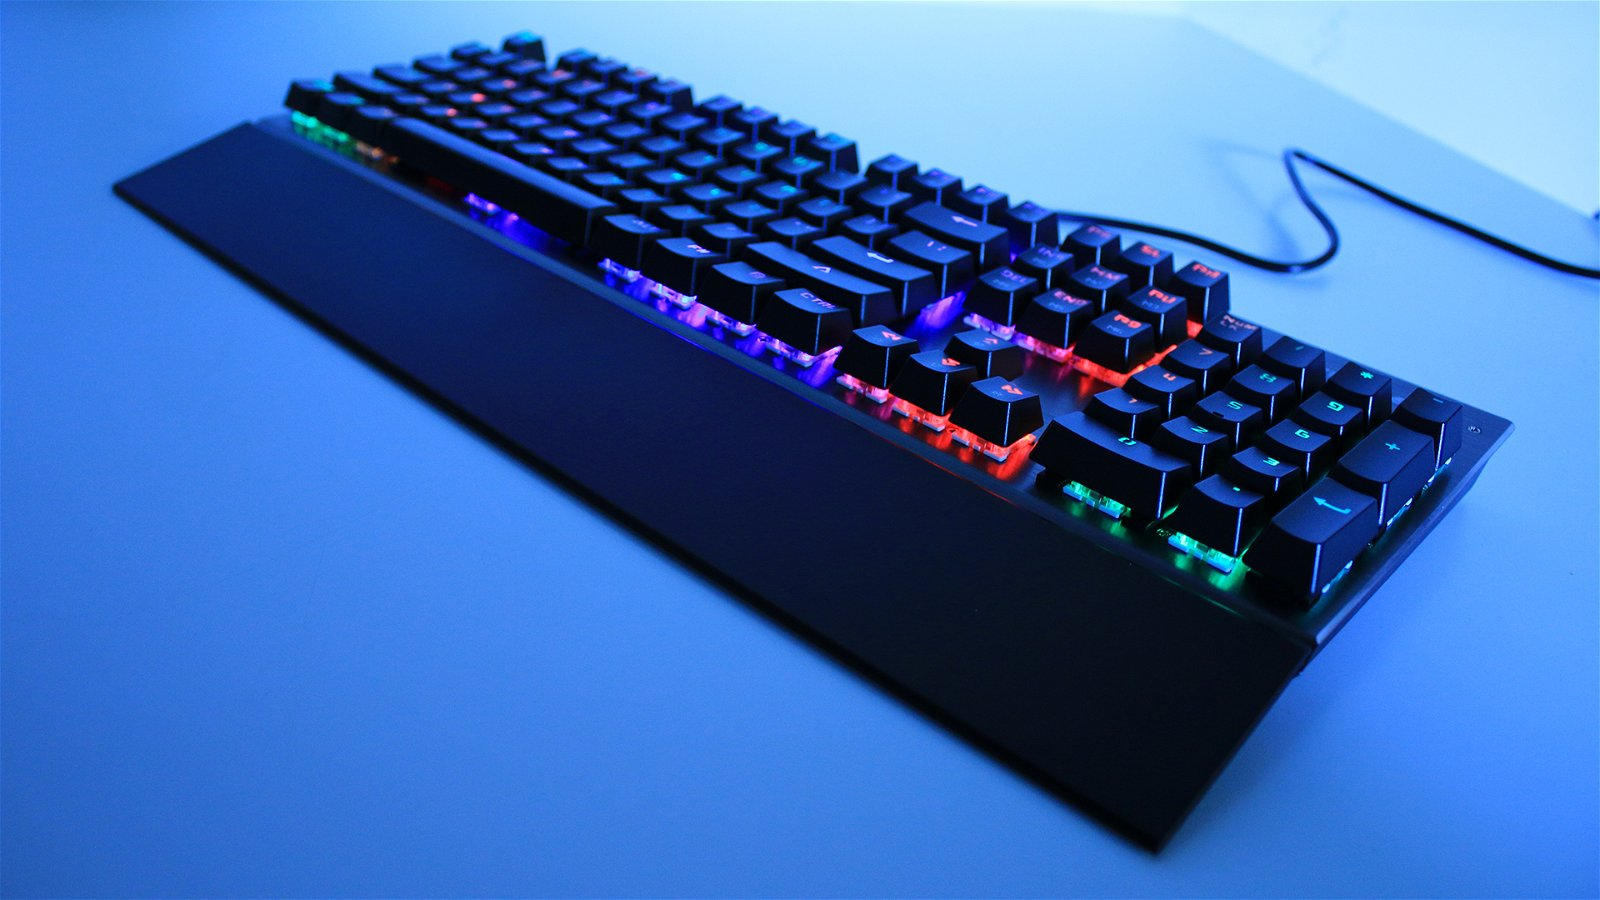 Motospeed CK108 Mechanical Keyboard (Hardware) Review 5